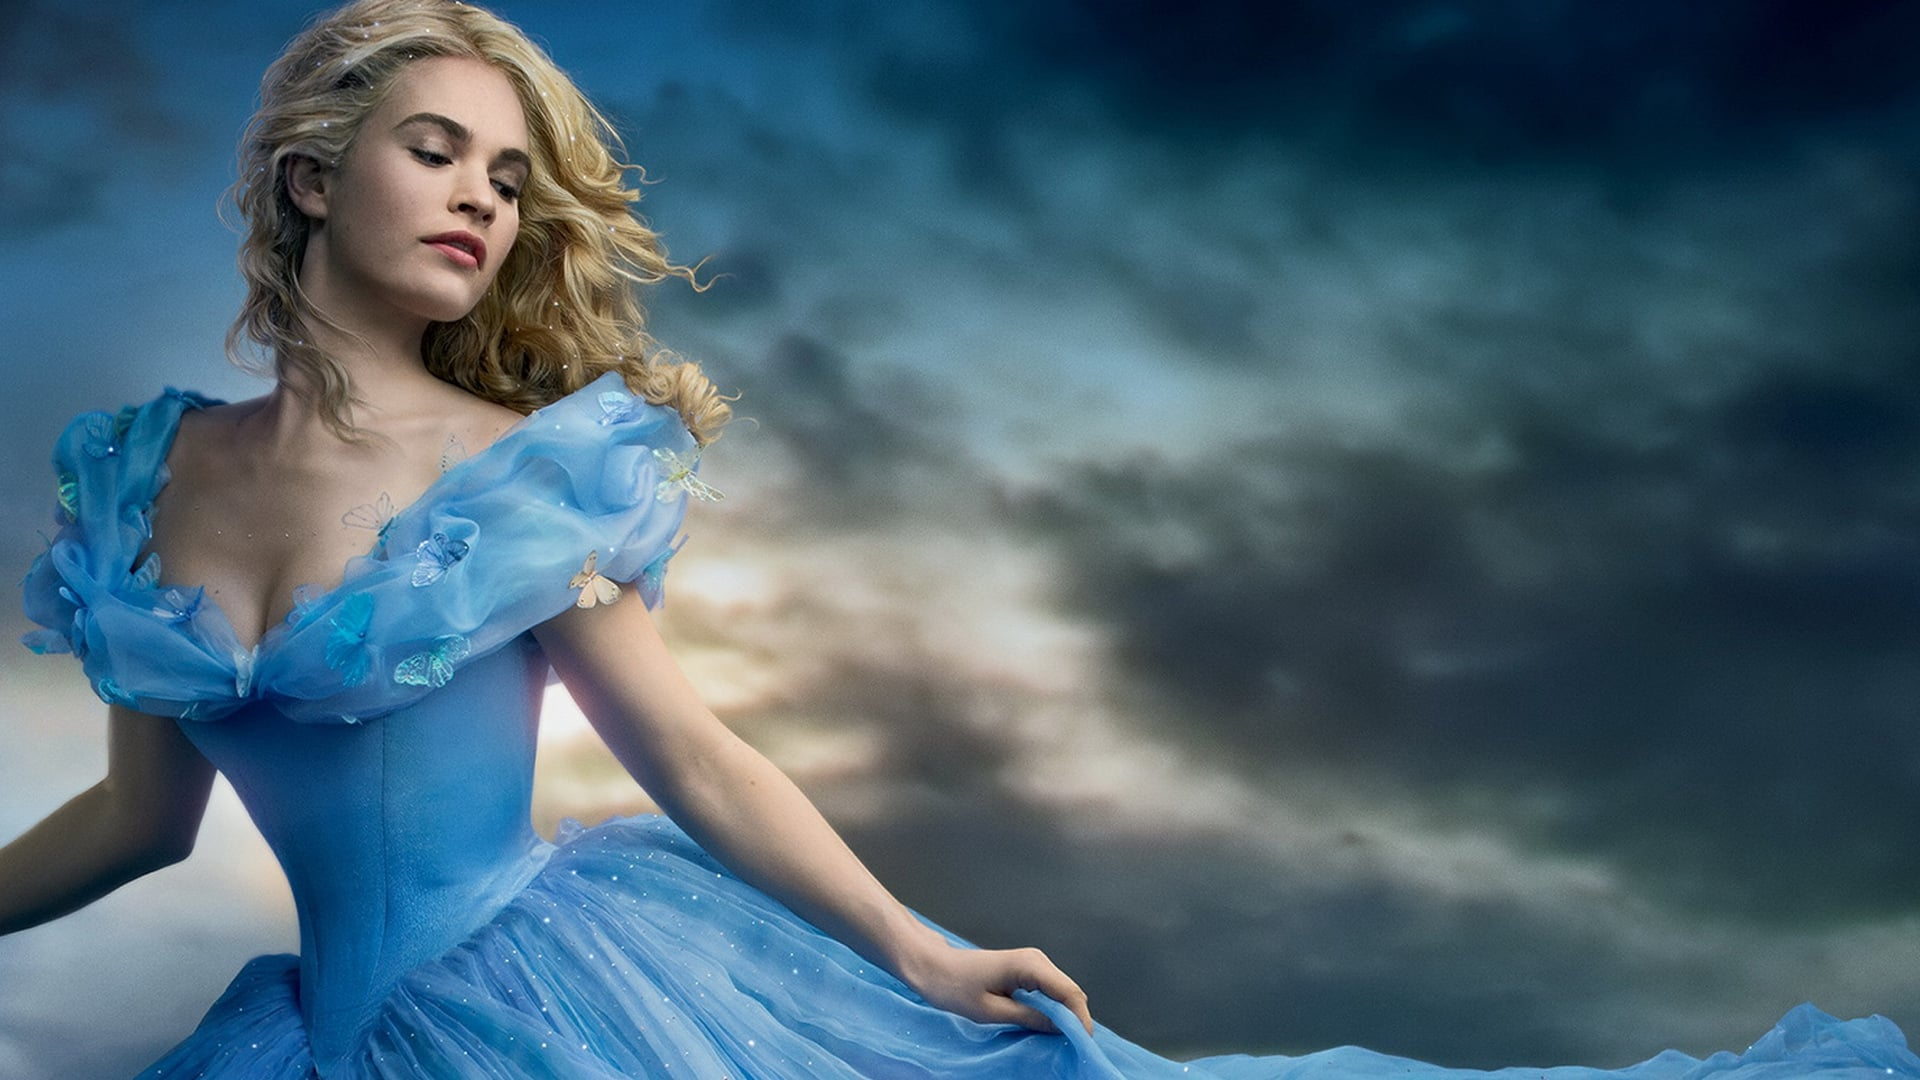 Home Wallpaper Iphone Lily James Wallpapers Hd Free Download